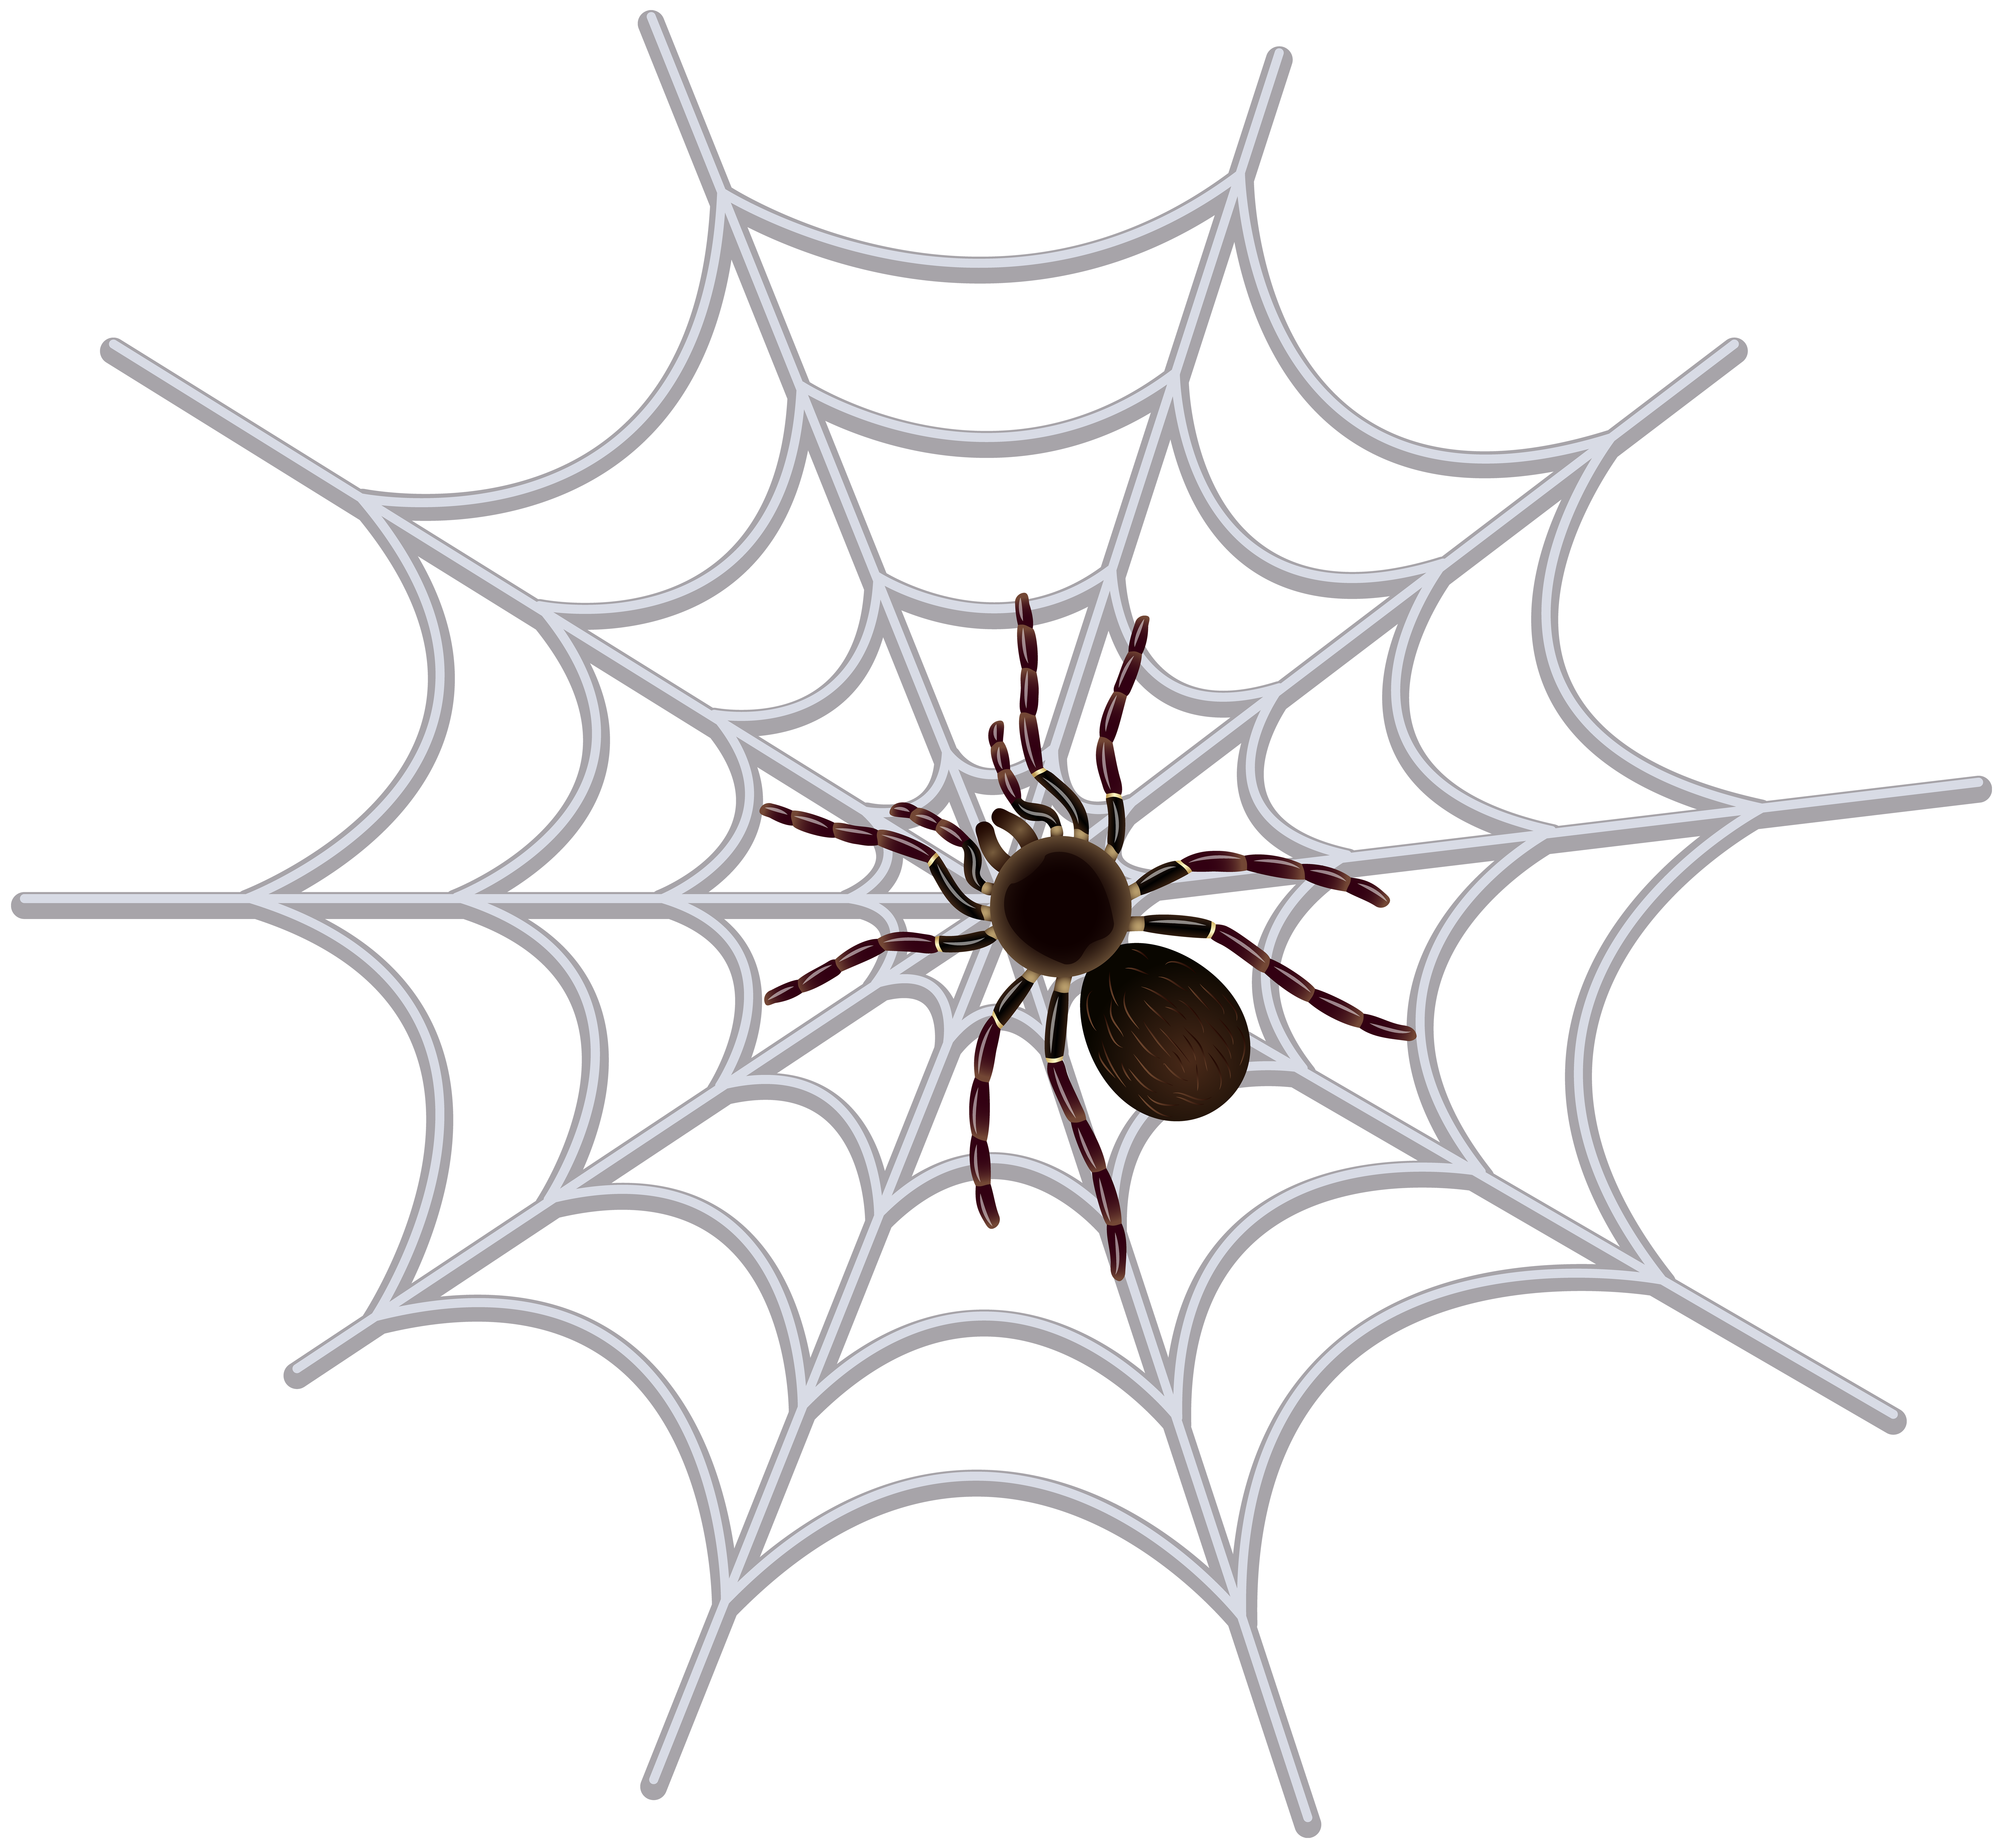 jpg black and white library Spider web images clipart. Transparent clip art image